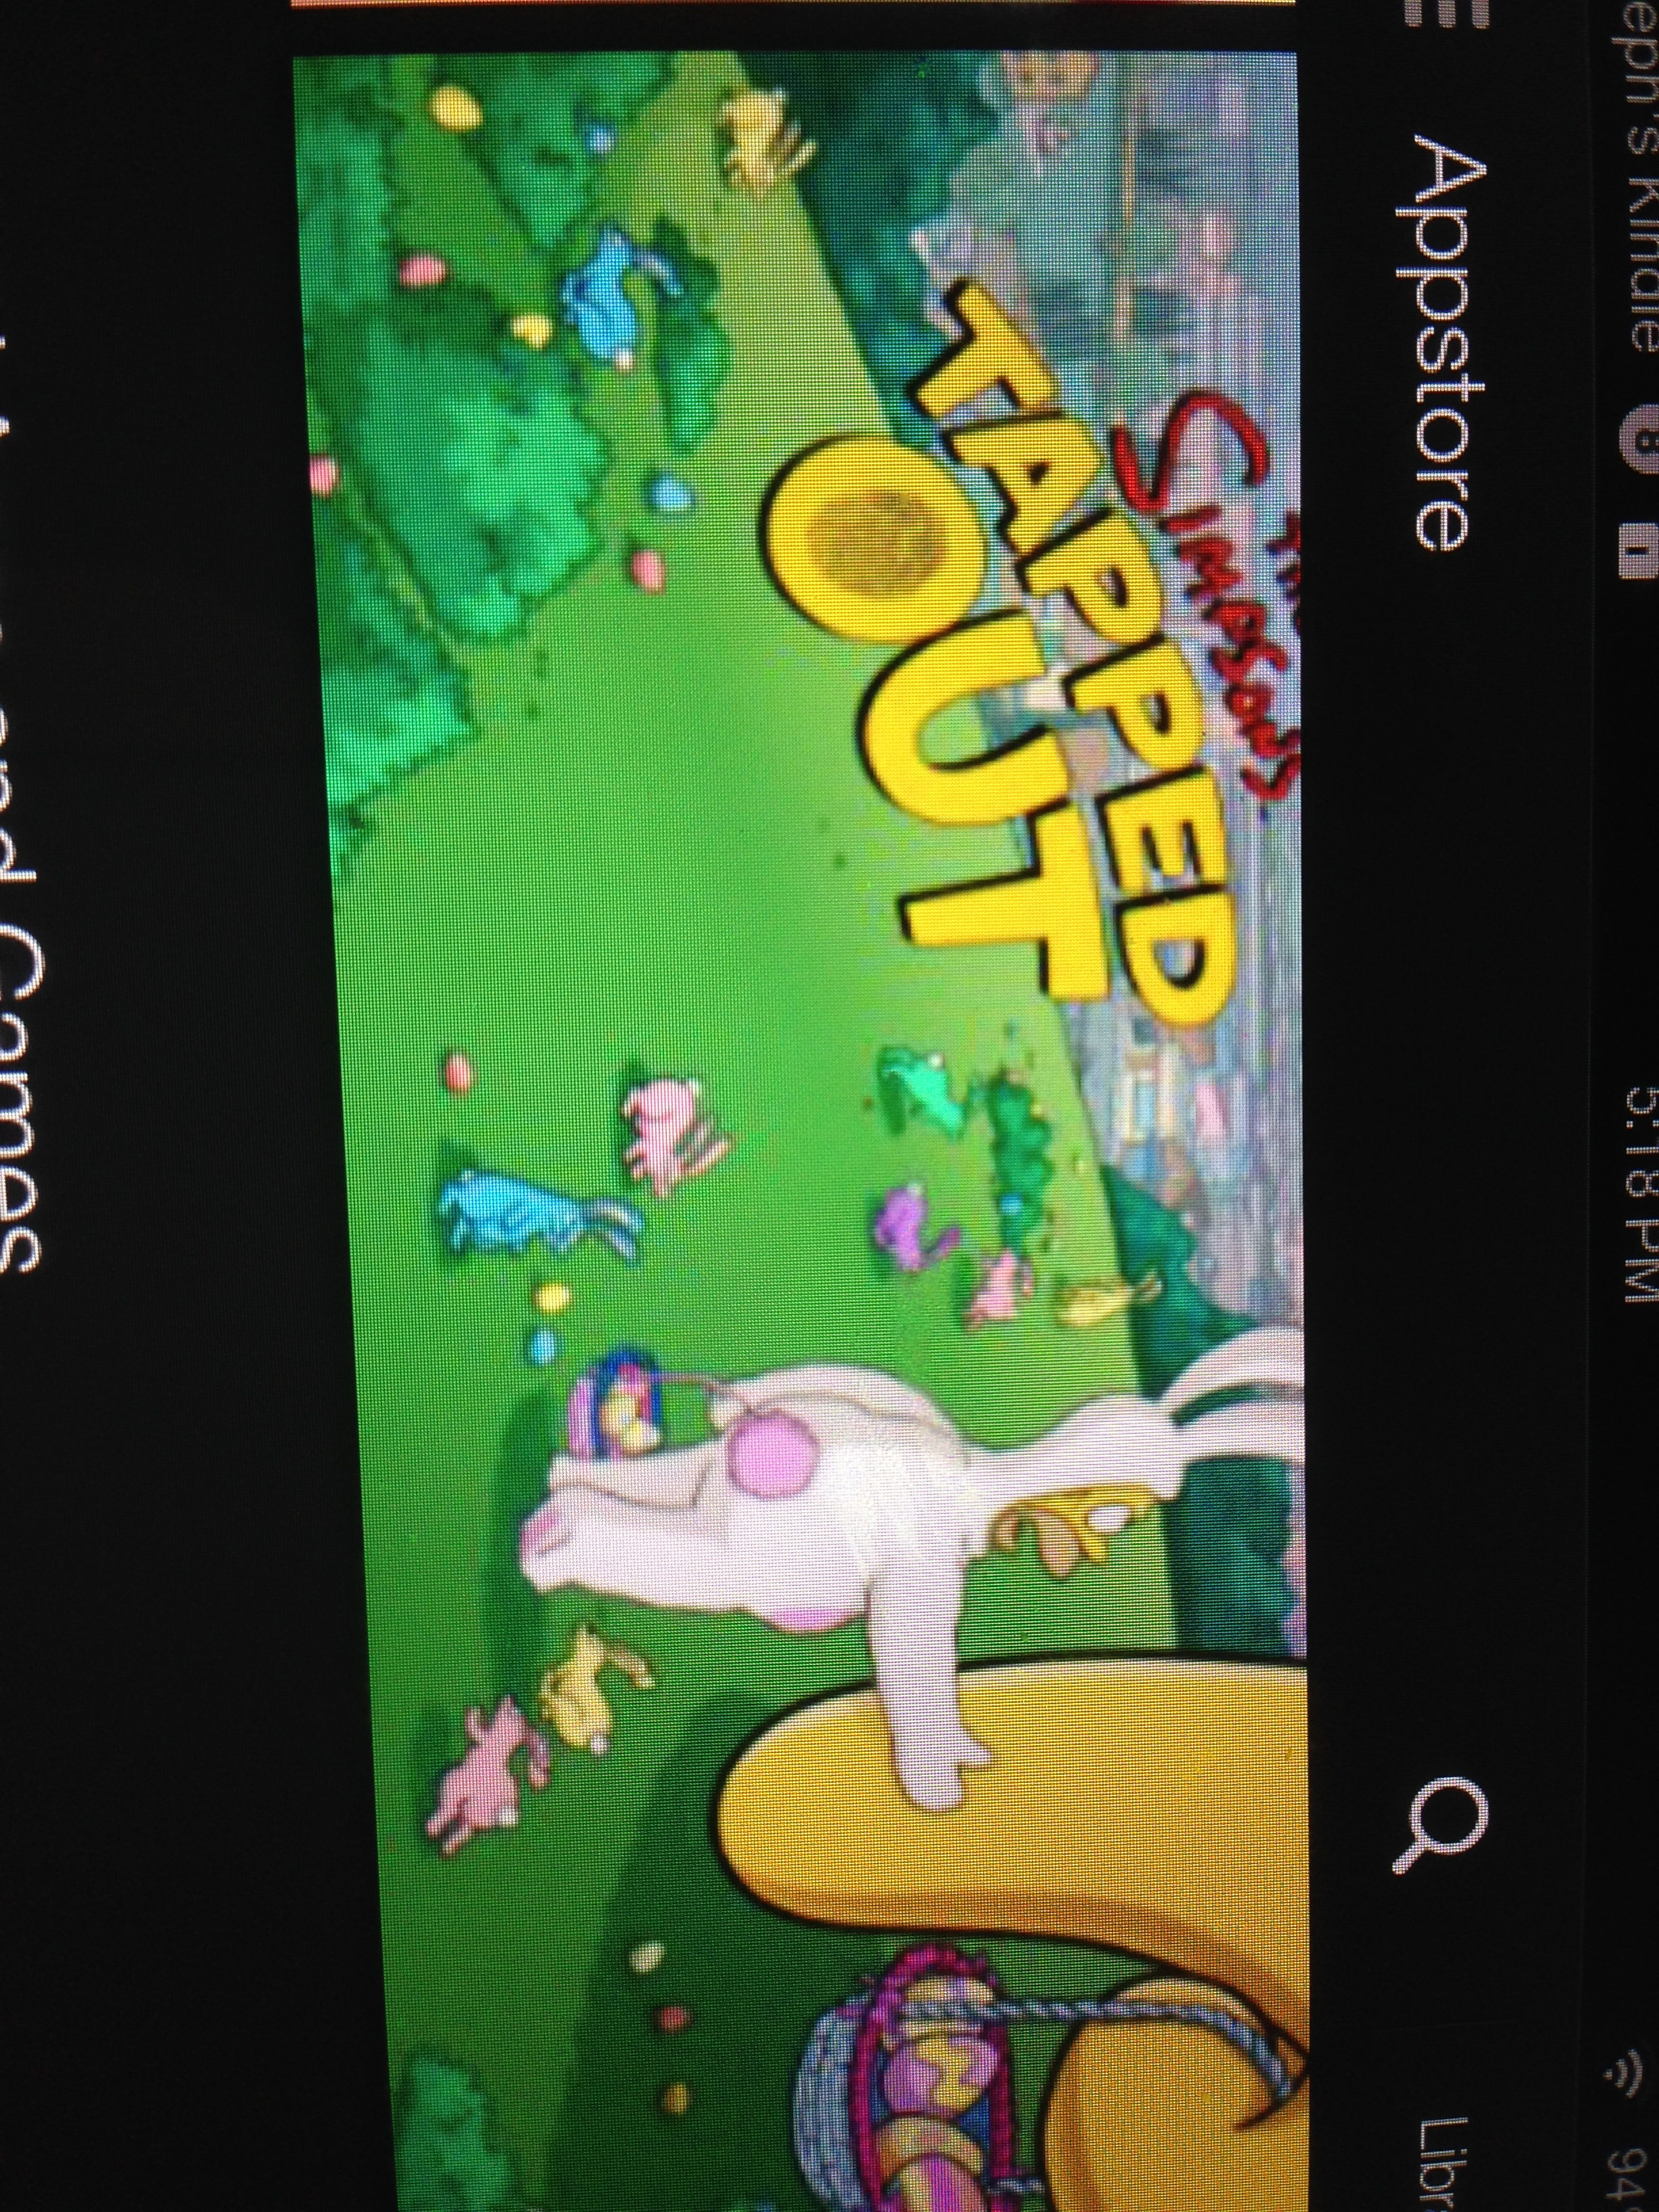 kindle fire simpsons tapped out upgrade problem tapped out update for